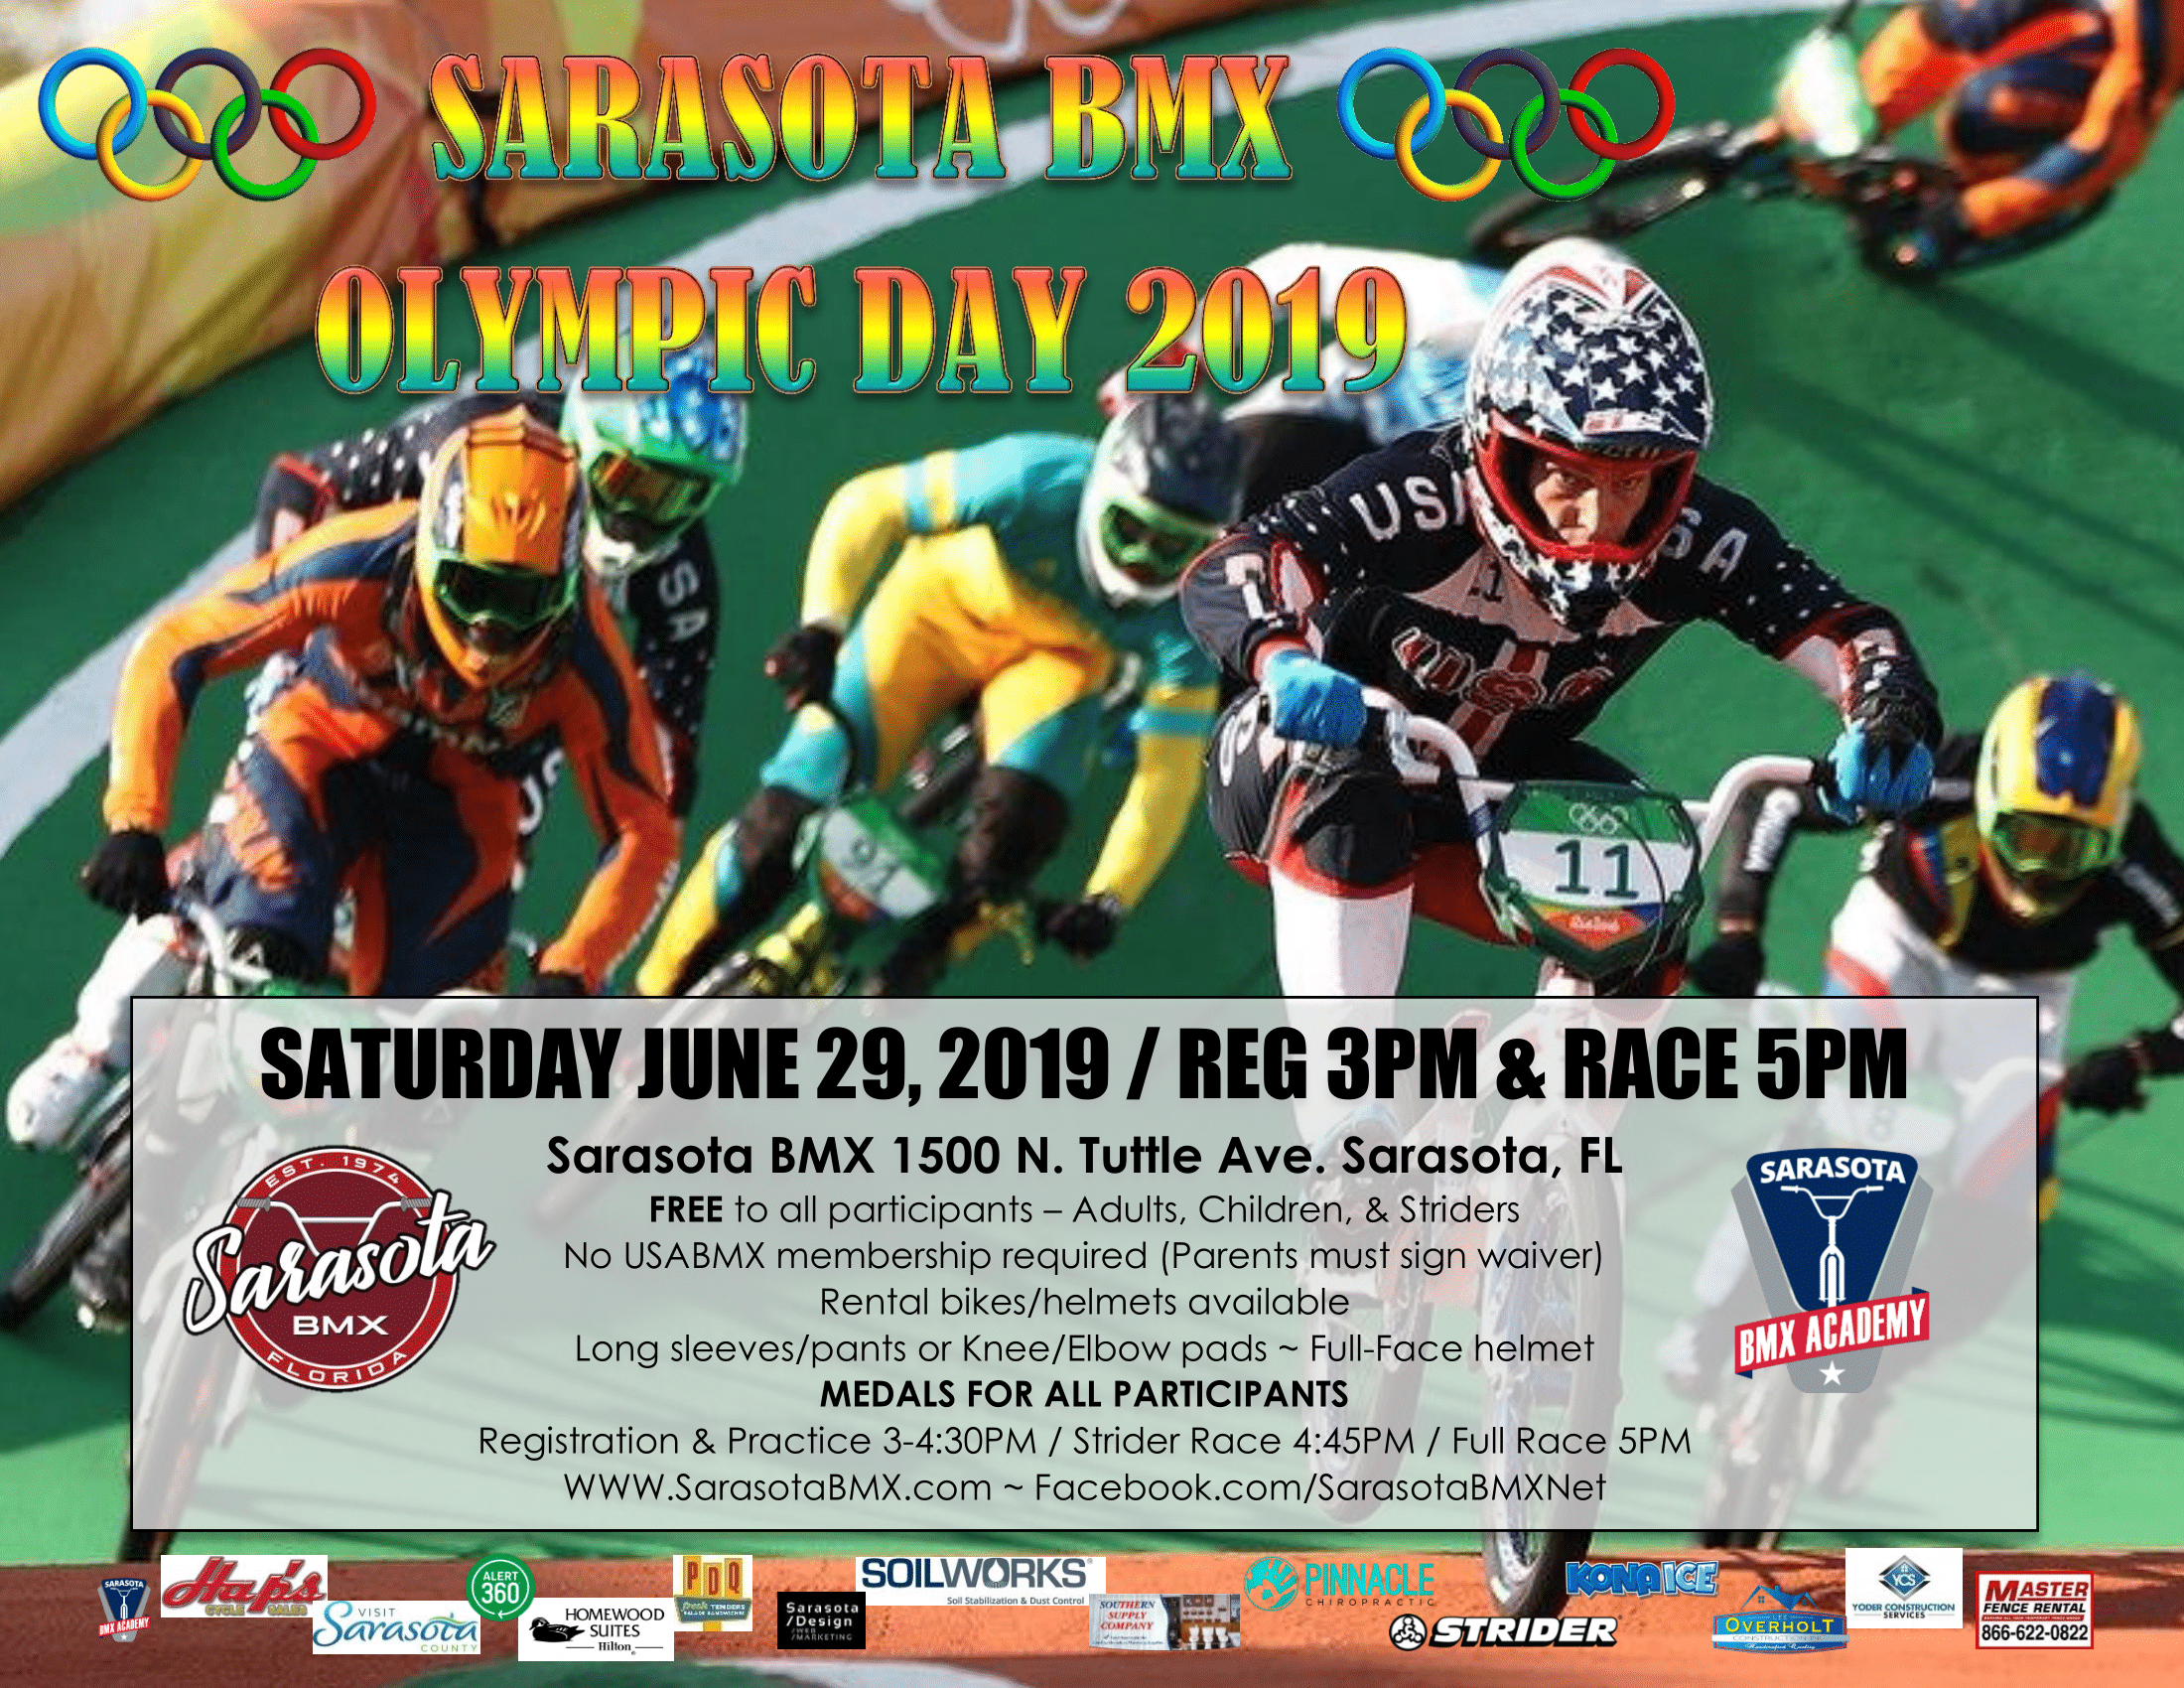 Olympic Day 2019